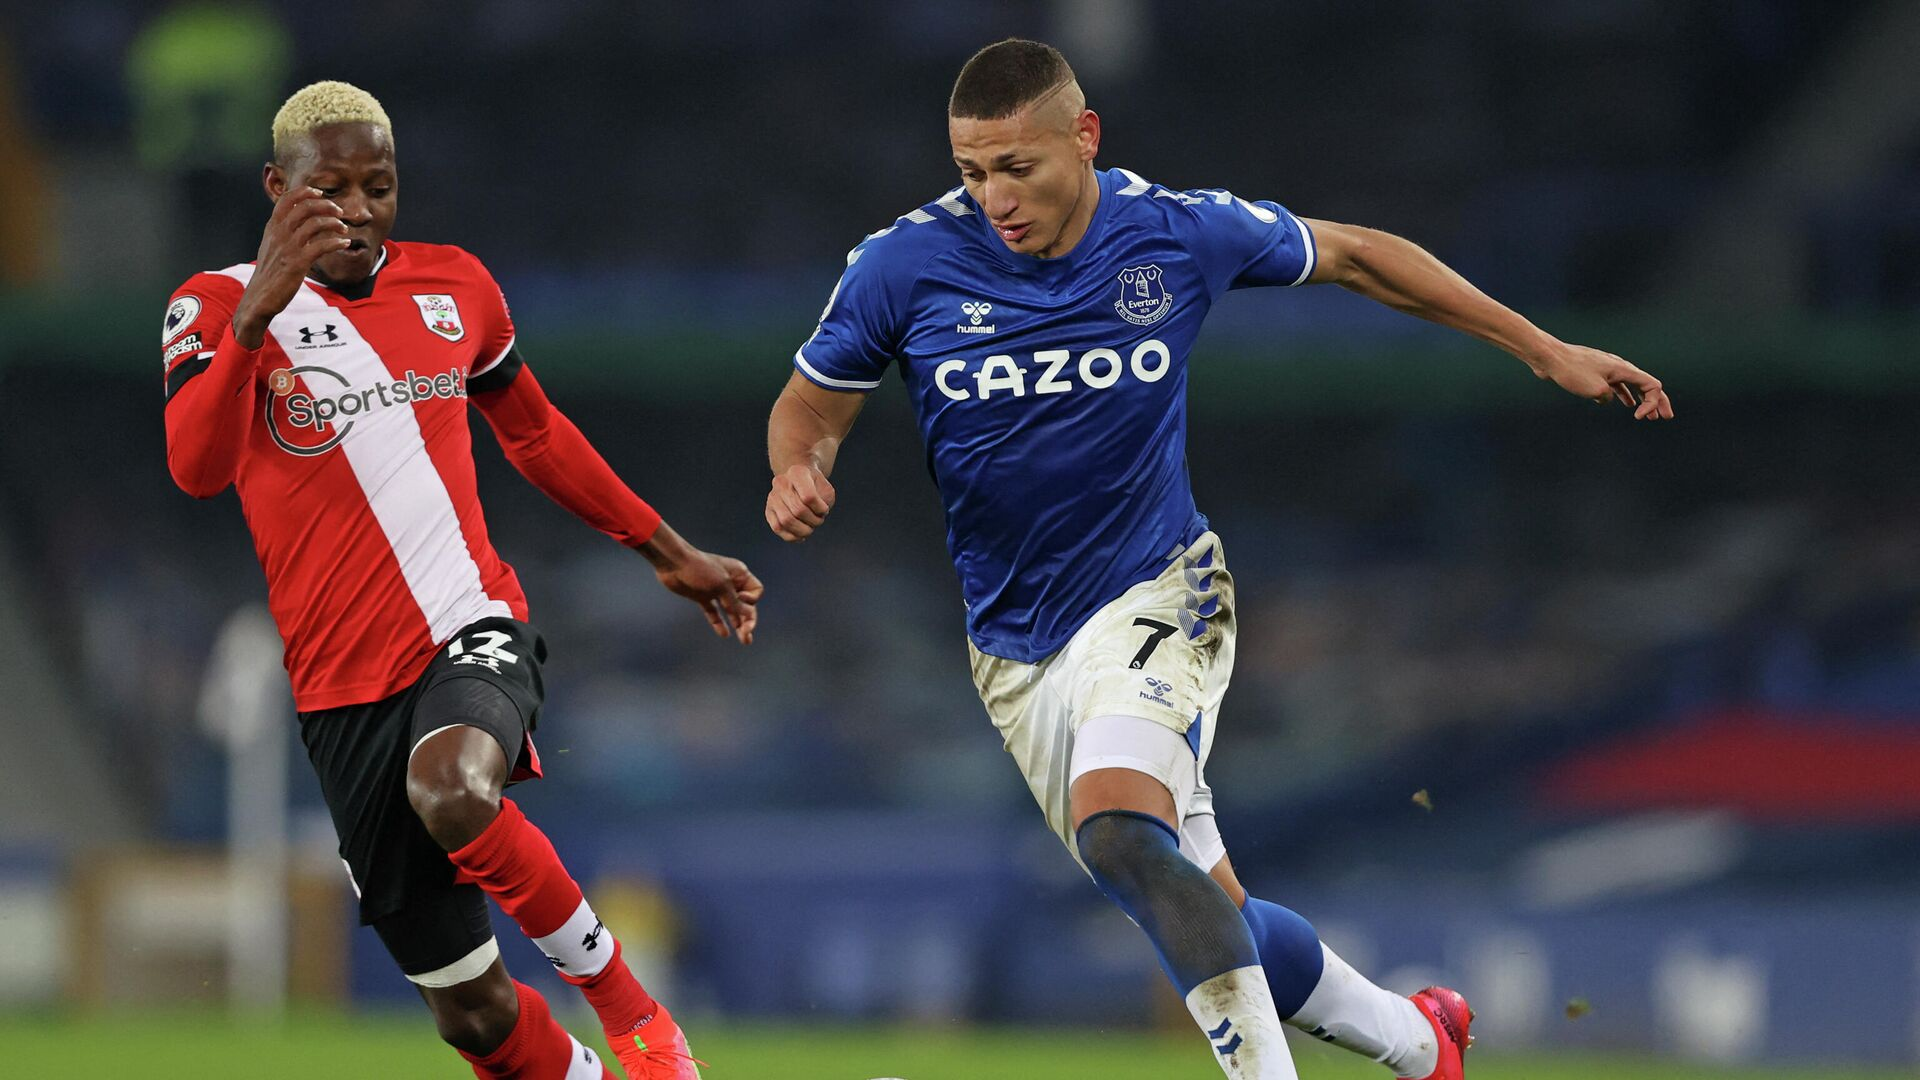 Southampton's Malian midfielder Moussa Djenepo (L) vies with Everton's Brazilian striker Richarlison (R) during the English Premier League football match between Everton and Southampton at Goodison Park in Liverpool, north west England on March 1, 2021. (Photo by Clive Brunskill / POOL / AFP) / RESTRICTED TO EDITORIAL USE. No use with unauthorized audio, video, data, fixture lists, club/league logos or 'live' services. Online in-match use limited to 120 images. An additional 40 images may be used in extra time. No video emulation. Social media in-match use limited to 120 images. An additional 40 images may be used in extra time. No use in betting publications, games or single club/league/player publications. /  - РИА Новости, 1920, 02.03.2021